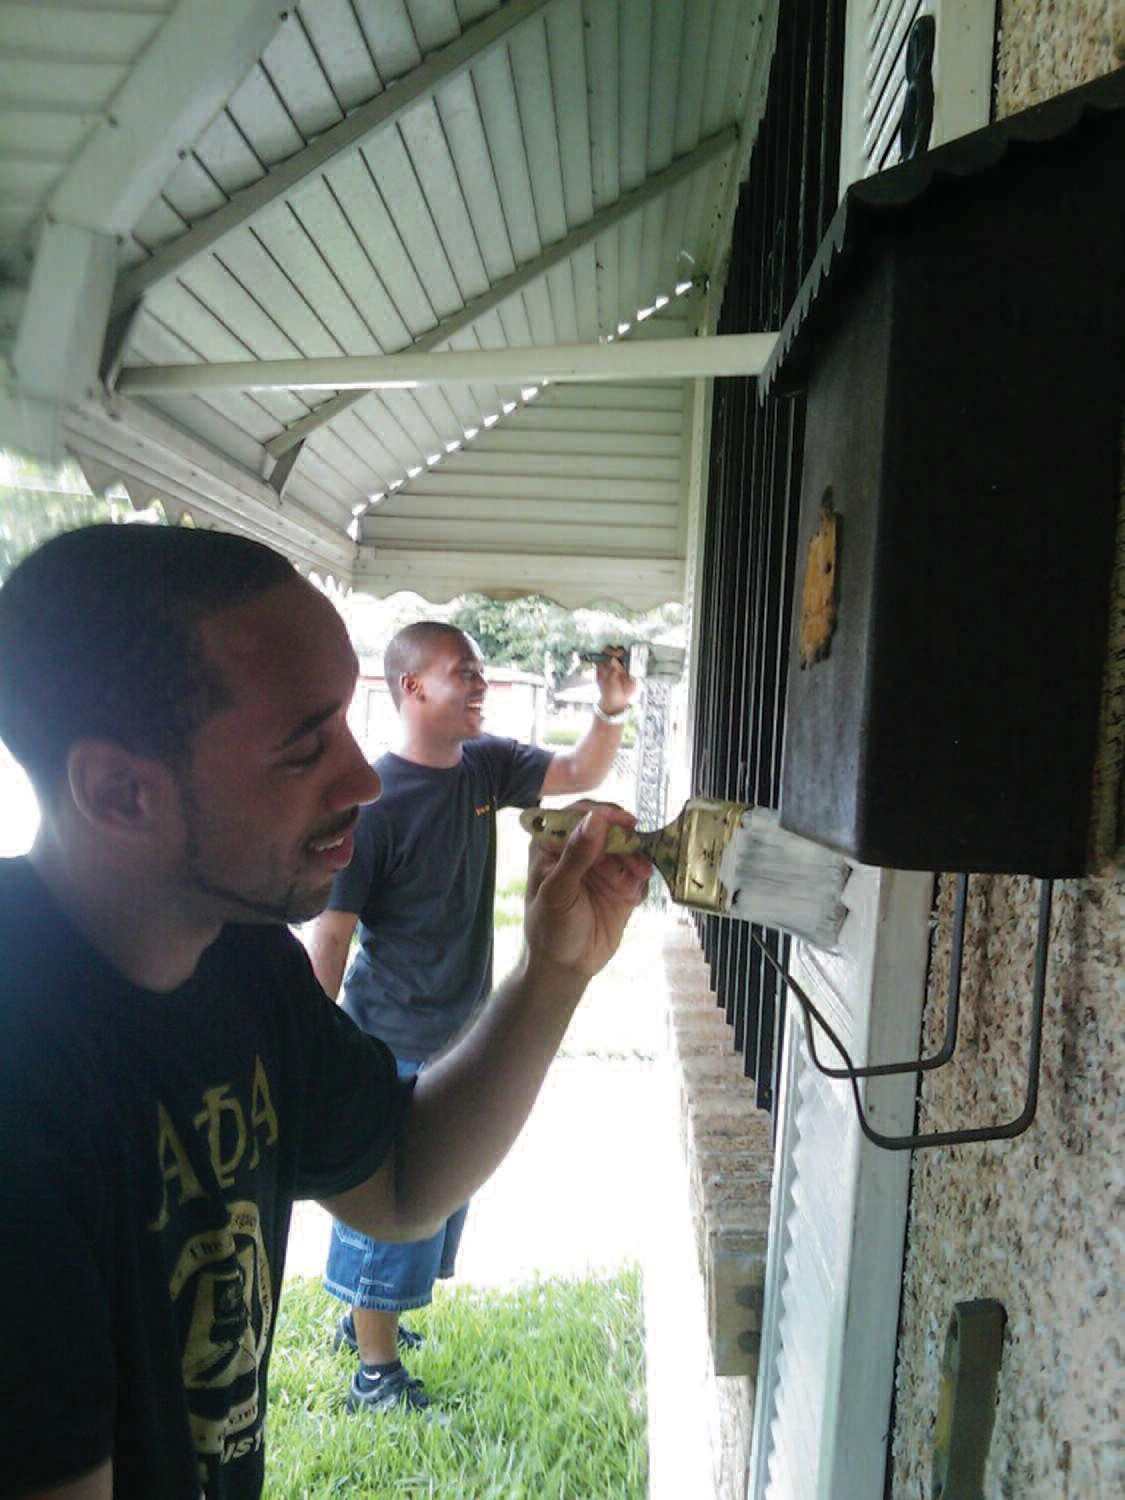 Members of Delta Eta Chapter of Alpha Phi Alpha Fraternity, Inc. participate in a community service project.